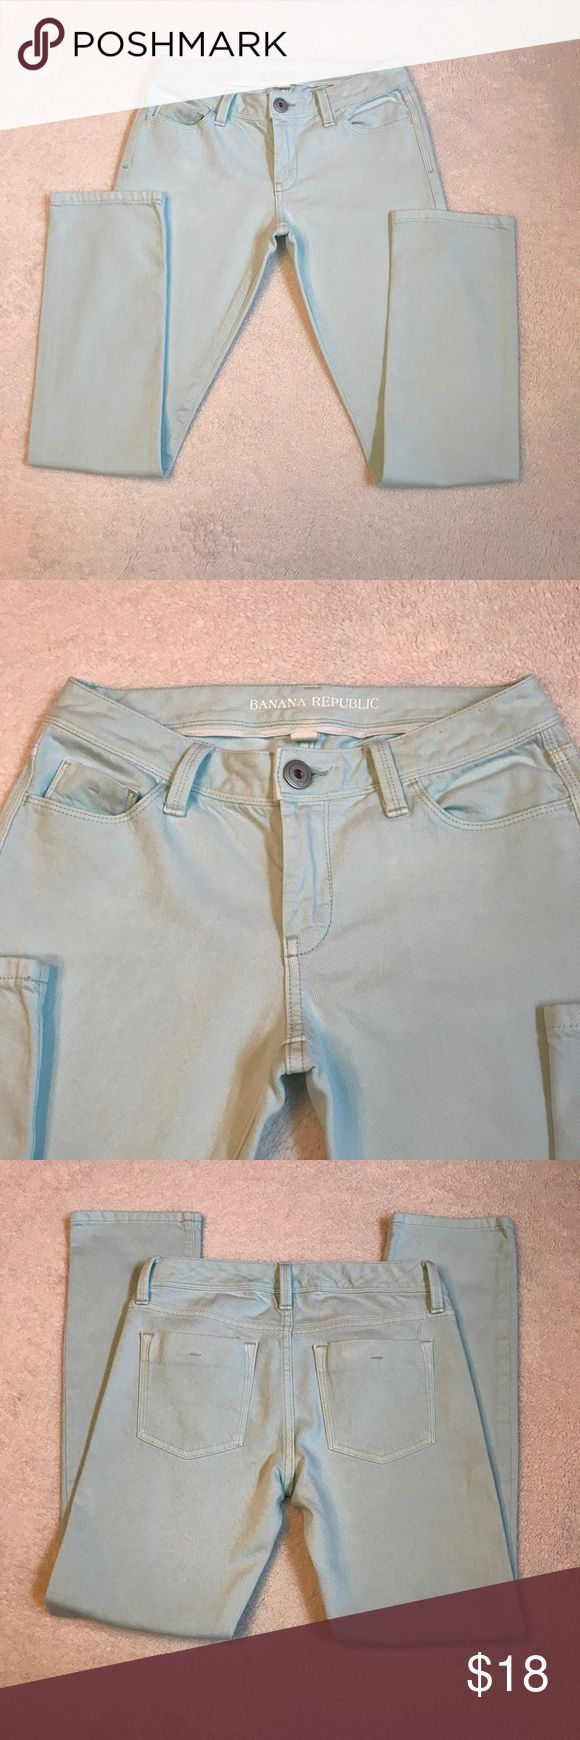 Banana republic aqua jeans Perfect condition. Inseam 28 inches Banana Republic Jeans Ankle & Cropped